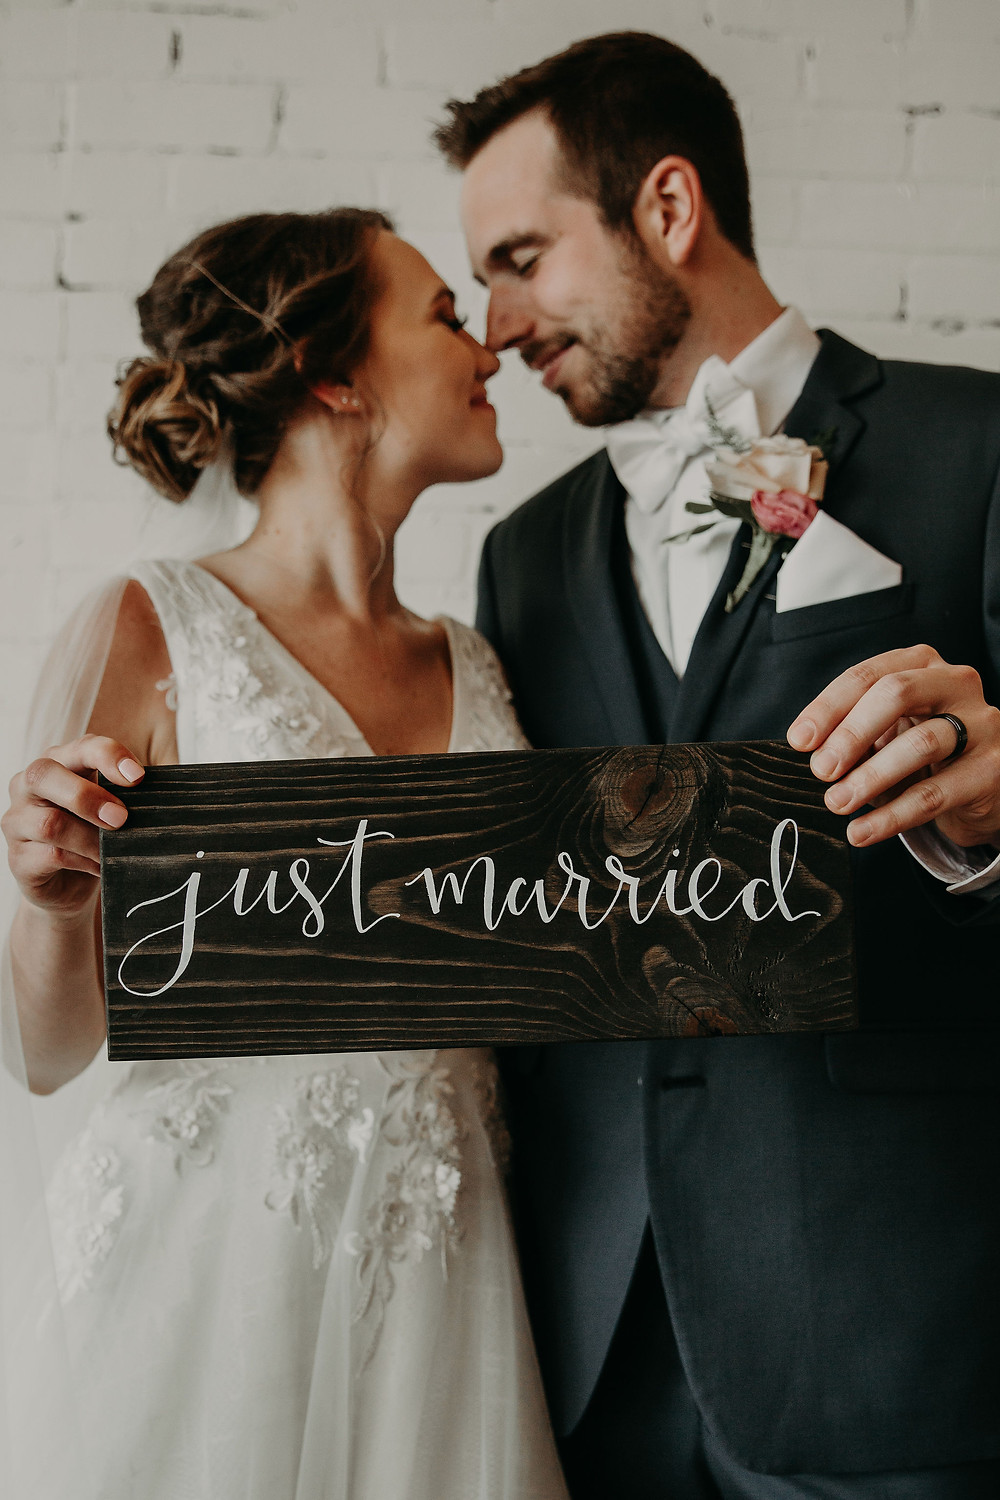 Just married wedding sign: Summer Small Wedding at The Lincoln Loft by Pretty Little Vintage Co.